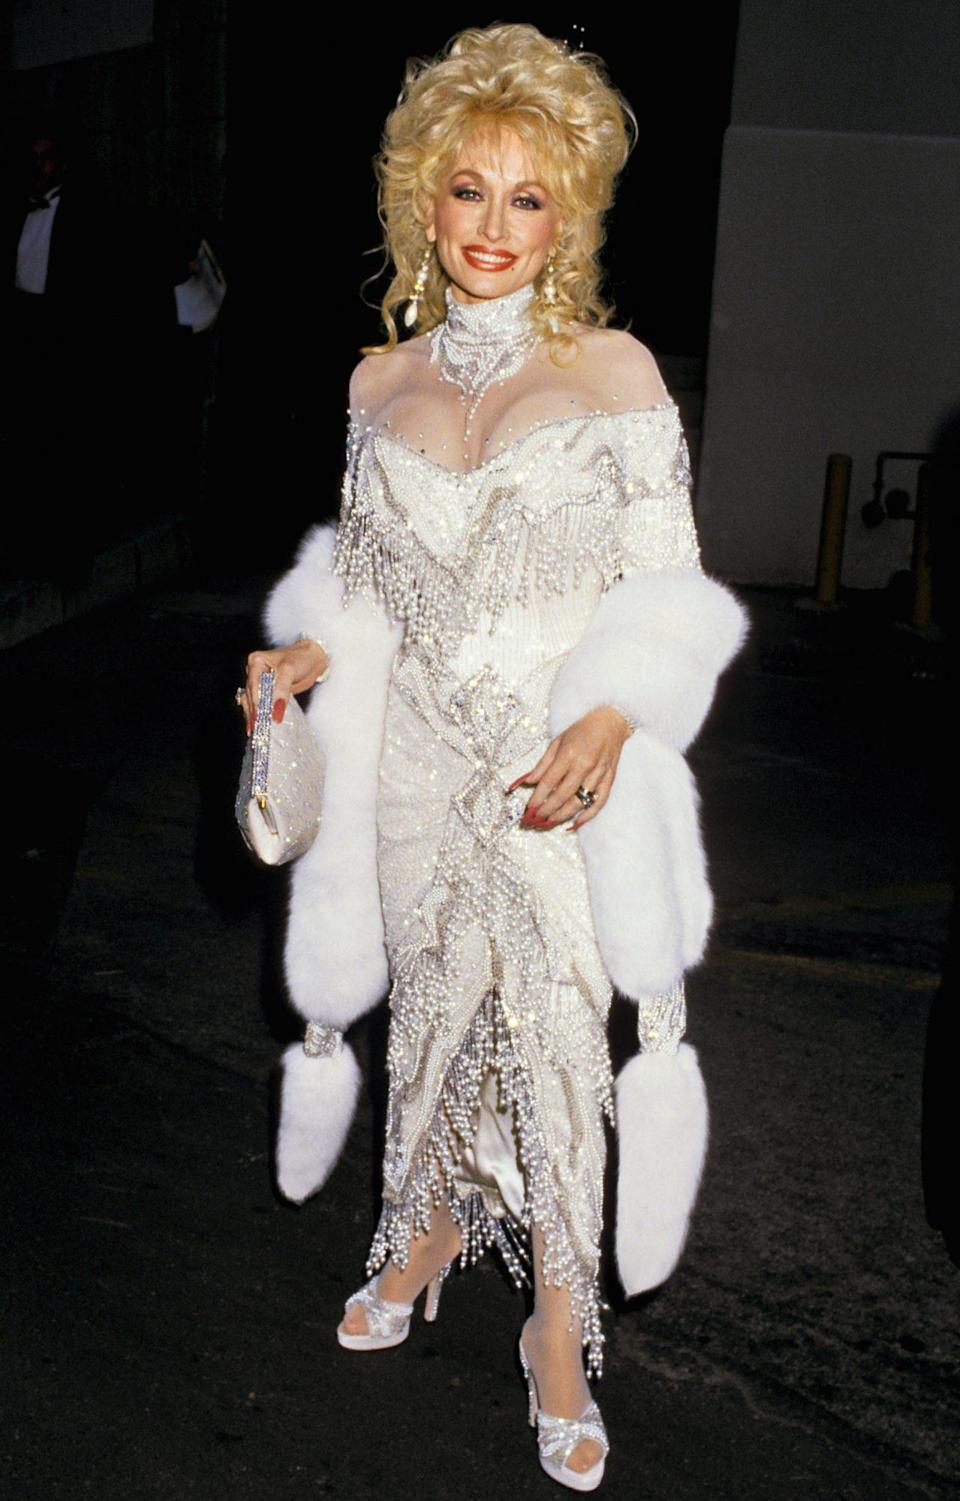 """<p>Her fashion — bust-baring, sparkly and unapologetically tight — has served as Parton's Trojan horse. """"I look like a woman, but I think like a man,"""" she's said, pictured here in 1988. """"And in this world of business, that has helped me a lot. Because by the time they think that I don't know what's goin' on, I got the money, and I'm gone!""""</p>"""